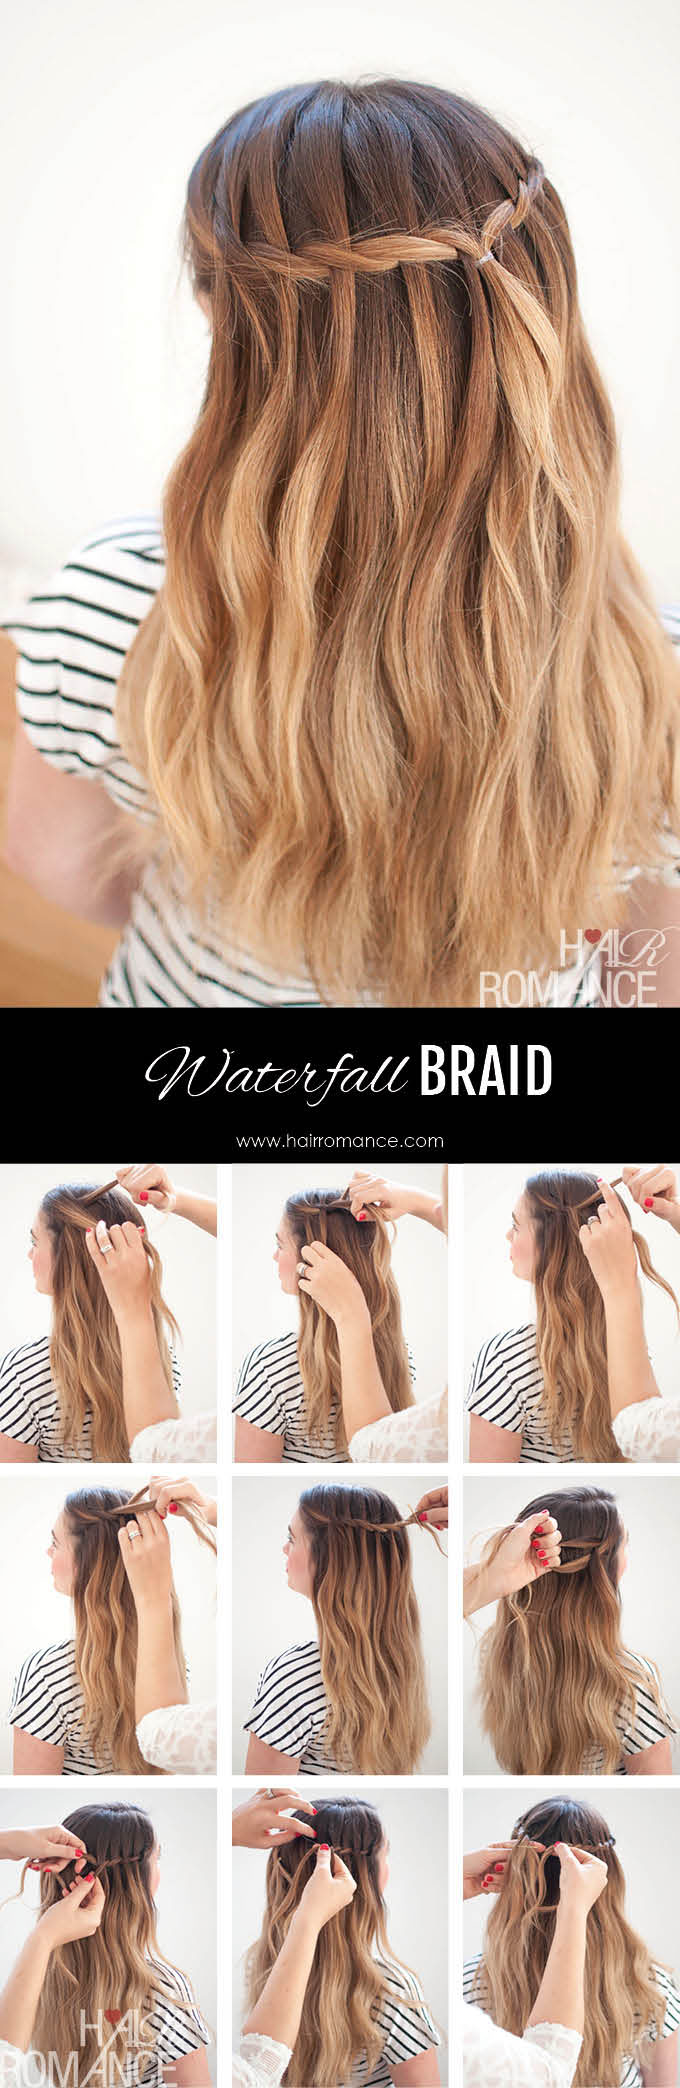 Hair Romance - Waterfall Braid Tutorial for Long Hair